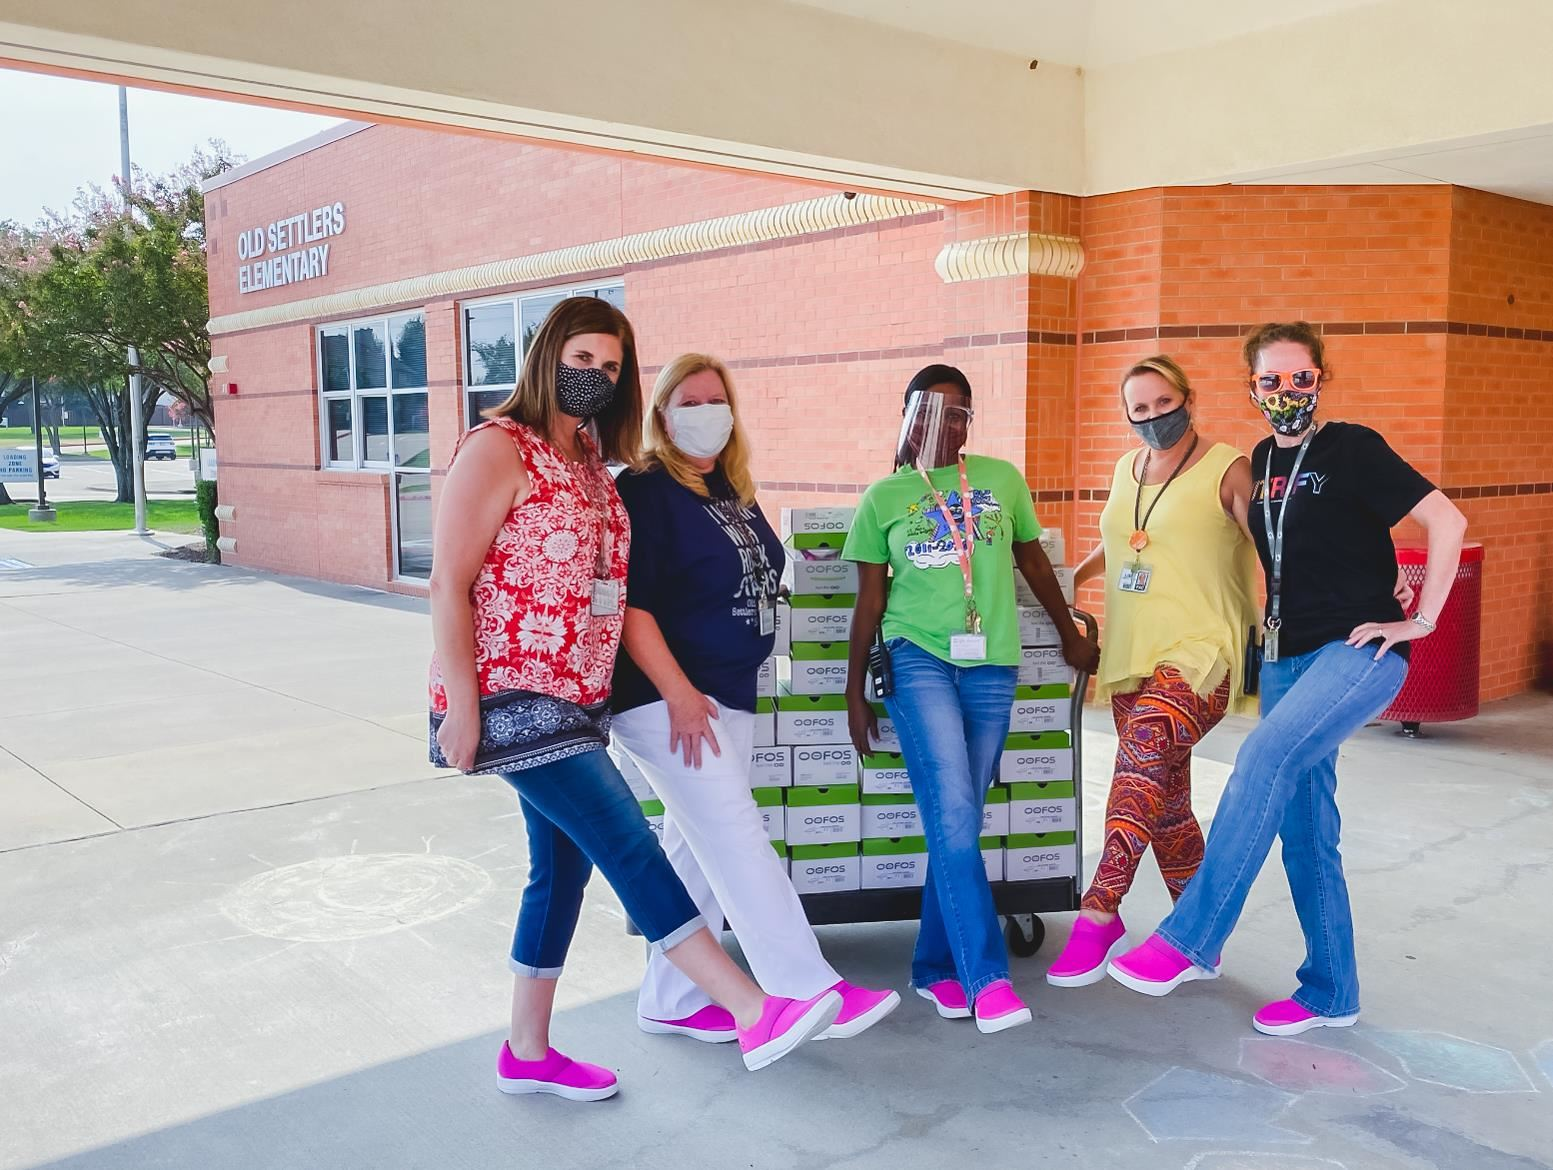 Old Settlers staff pose with their new OOFOS shoes on their feet. 2020